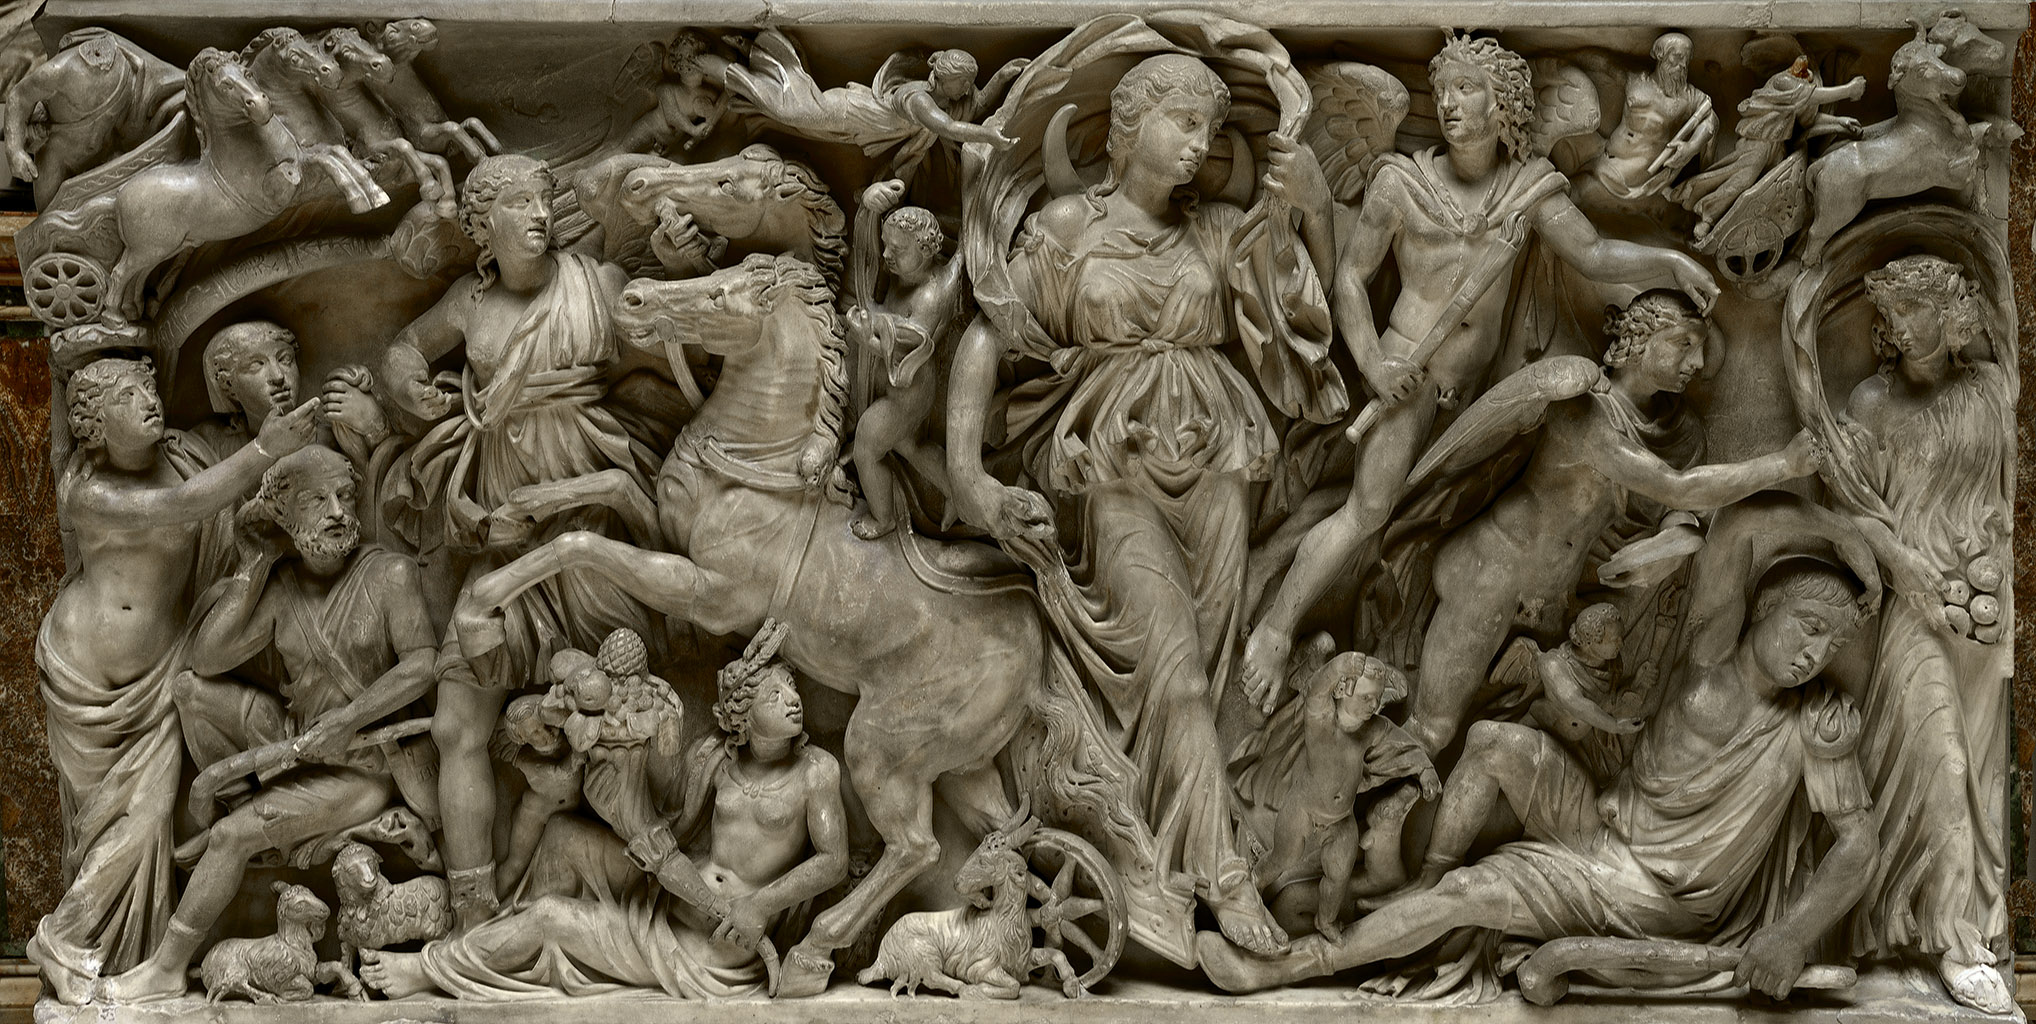 Sarcophagus with a myth of Selene and Endymion. Front panel. Marble. L. 252 cm; H. 132 cm; D. 120 cm. First half of the 3rd cent. CE. Rome, Doria Pamphilj Gallery